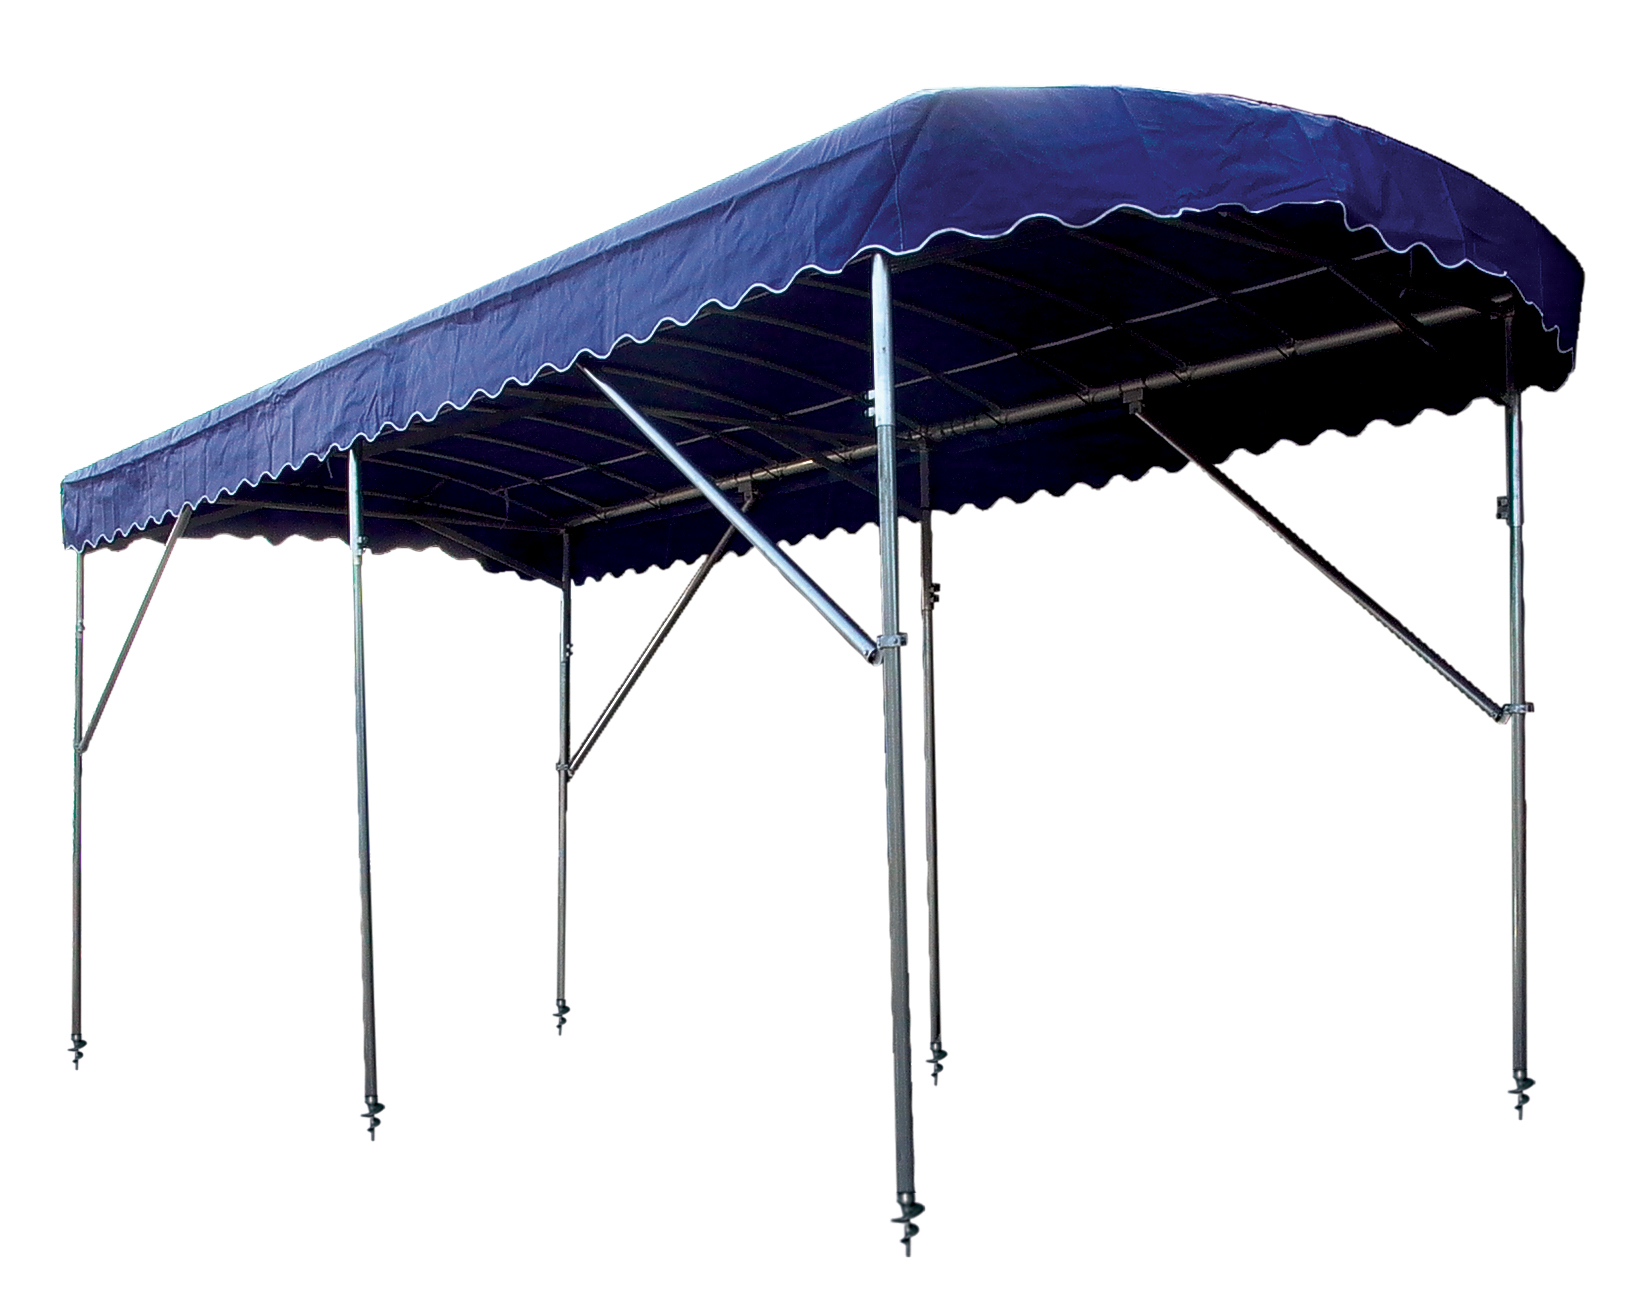 freestanding canopy small image  sc 1 st  Lakeshore Products & Freestanding Canopy